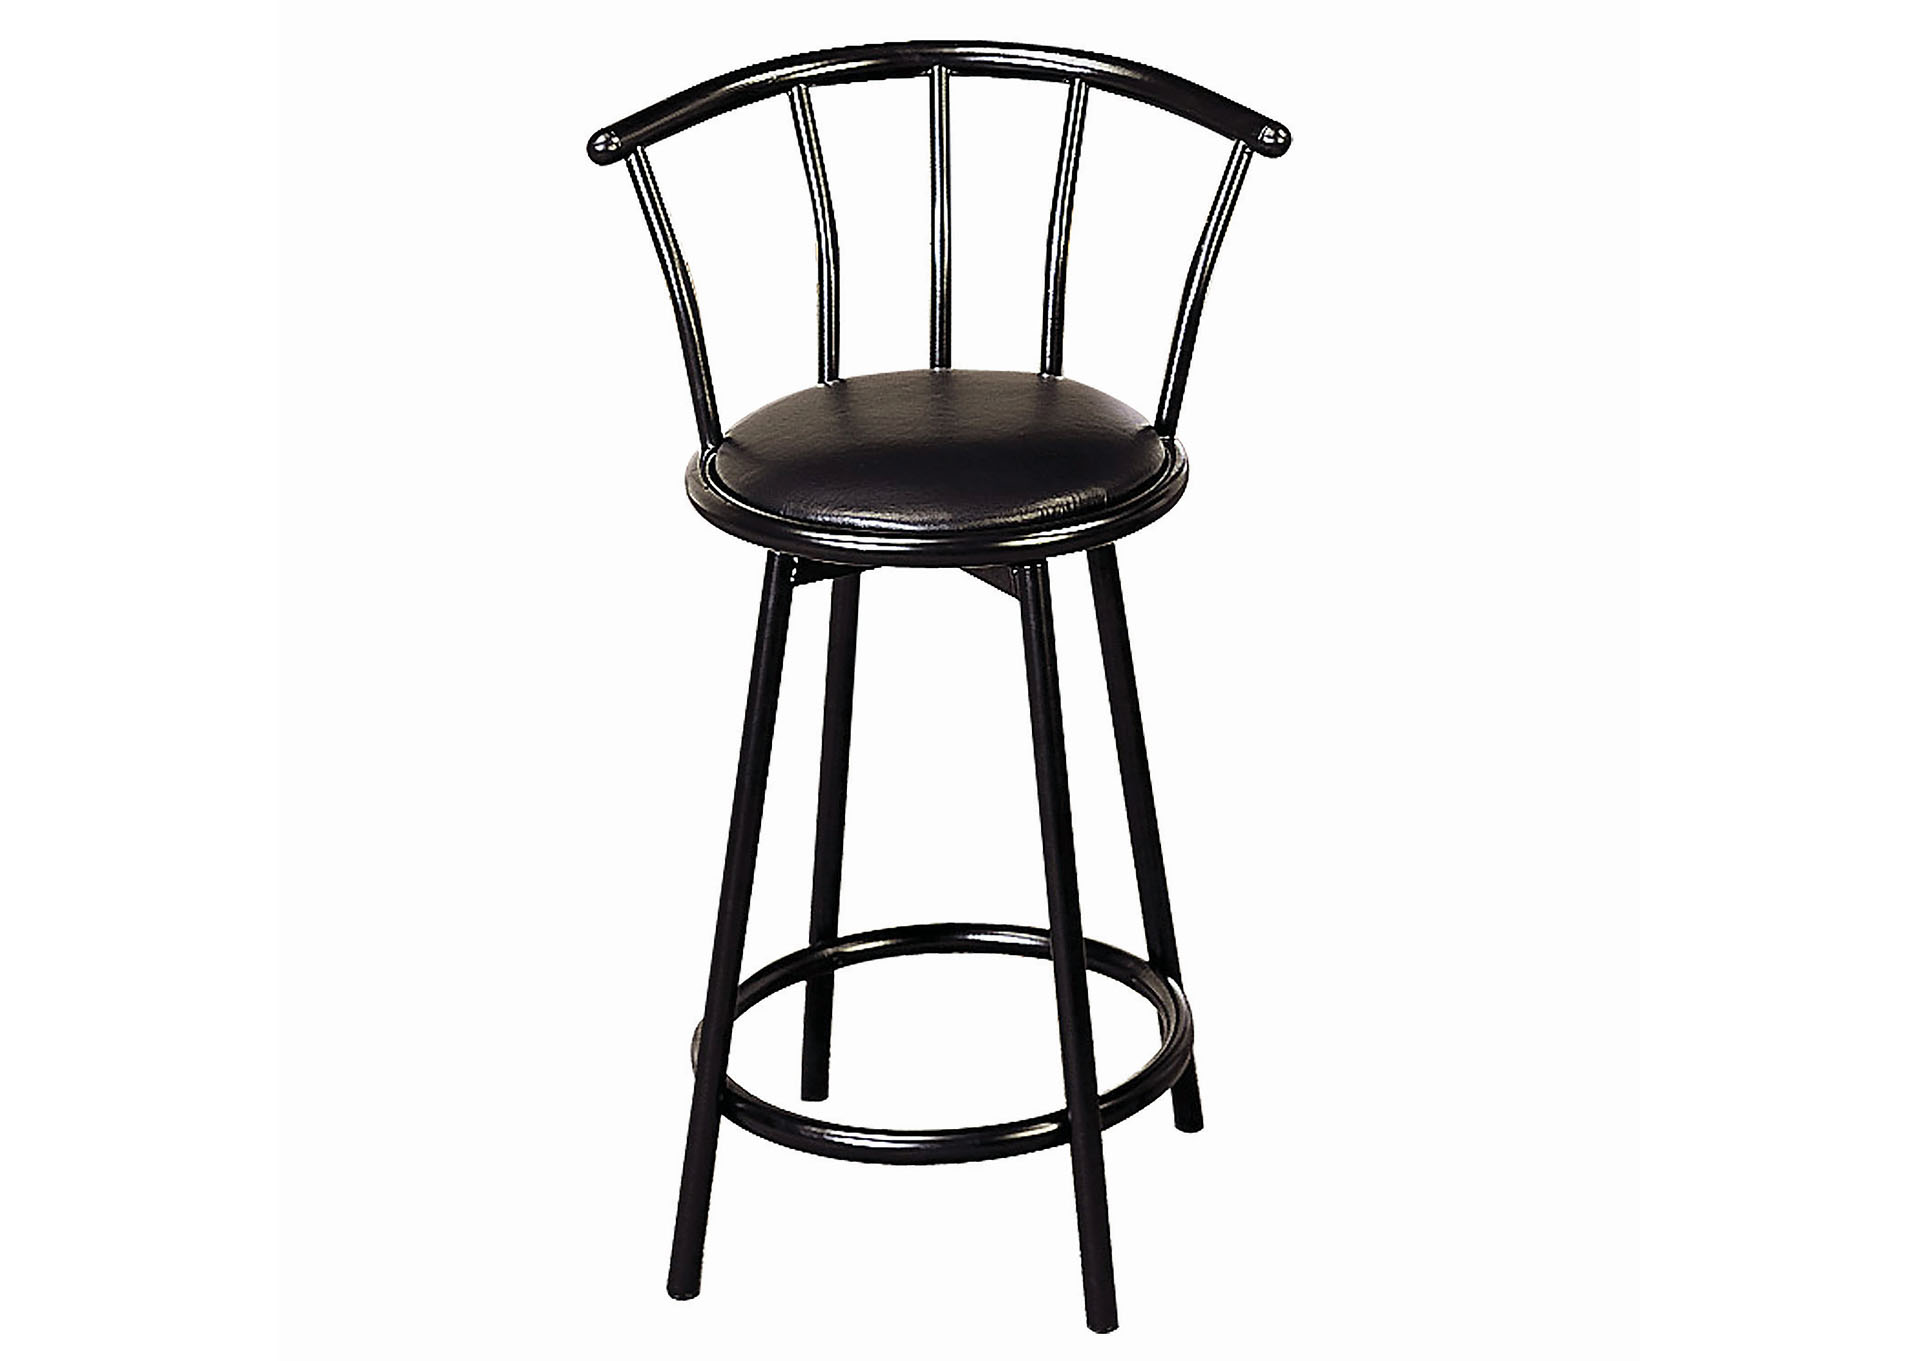 Cool Joe Bs Furniture 24 Metal Swivel Black Bar Stool Set Of 2 Gamerscity Chair Design For Home Gamerscityorg